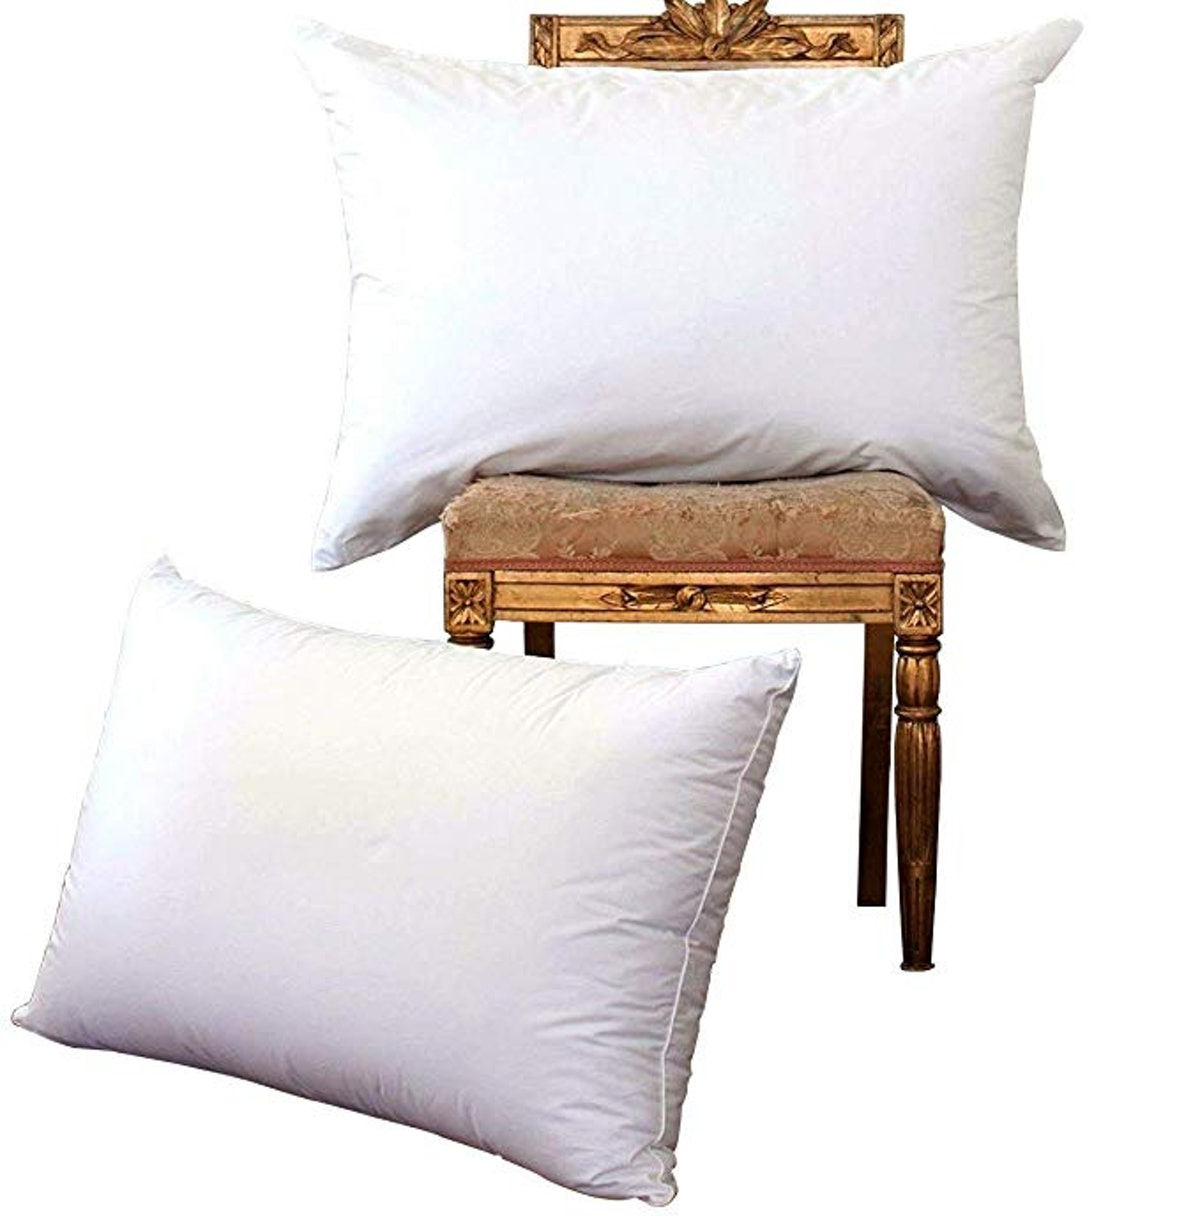 NP Luxury White Goose Down Bed Pillows (Set of 2)